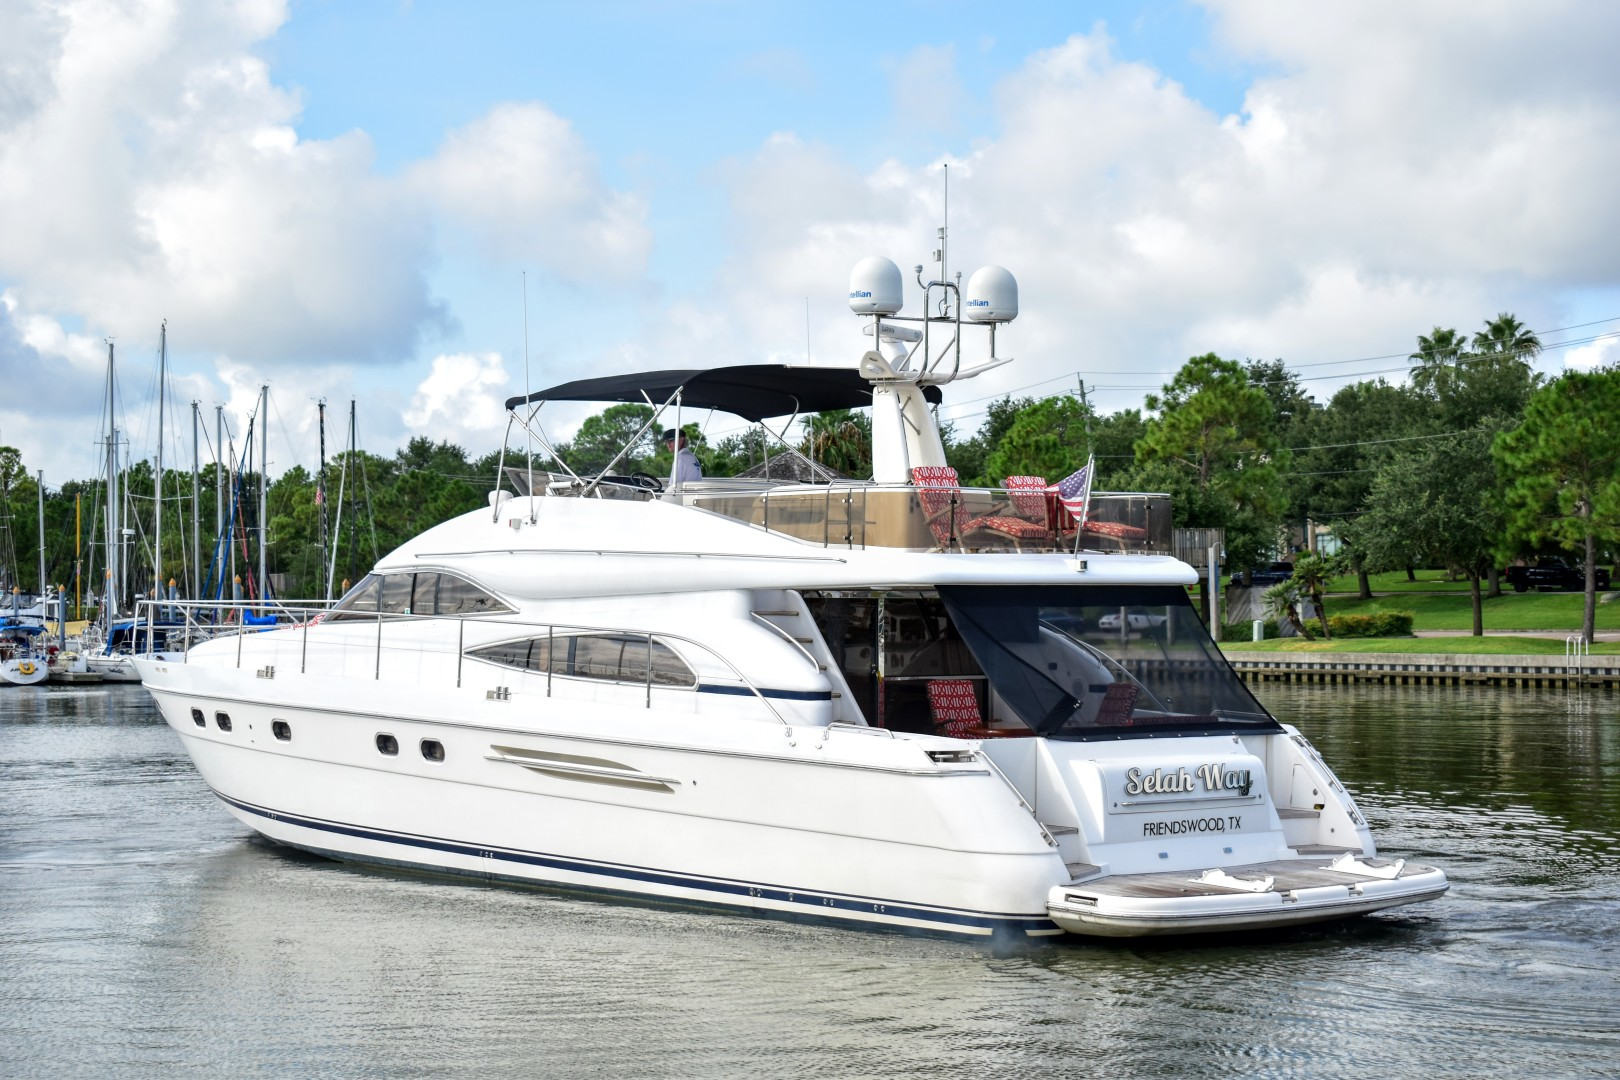 Viking Princess-65 Motor Yacht 2003-Selah Way Kemah-Texas-United States-Viking Princess Motor Yacht 2003 Selah Way-1203714 | Thumbnail